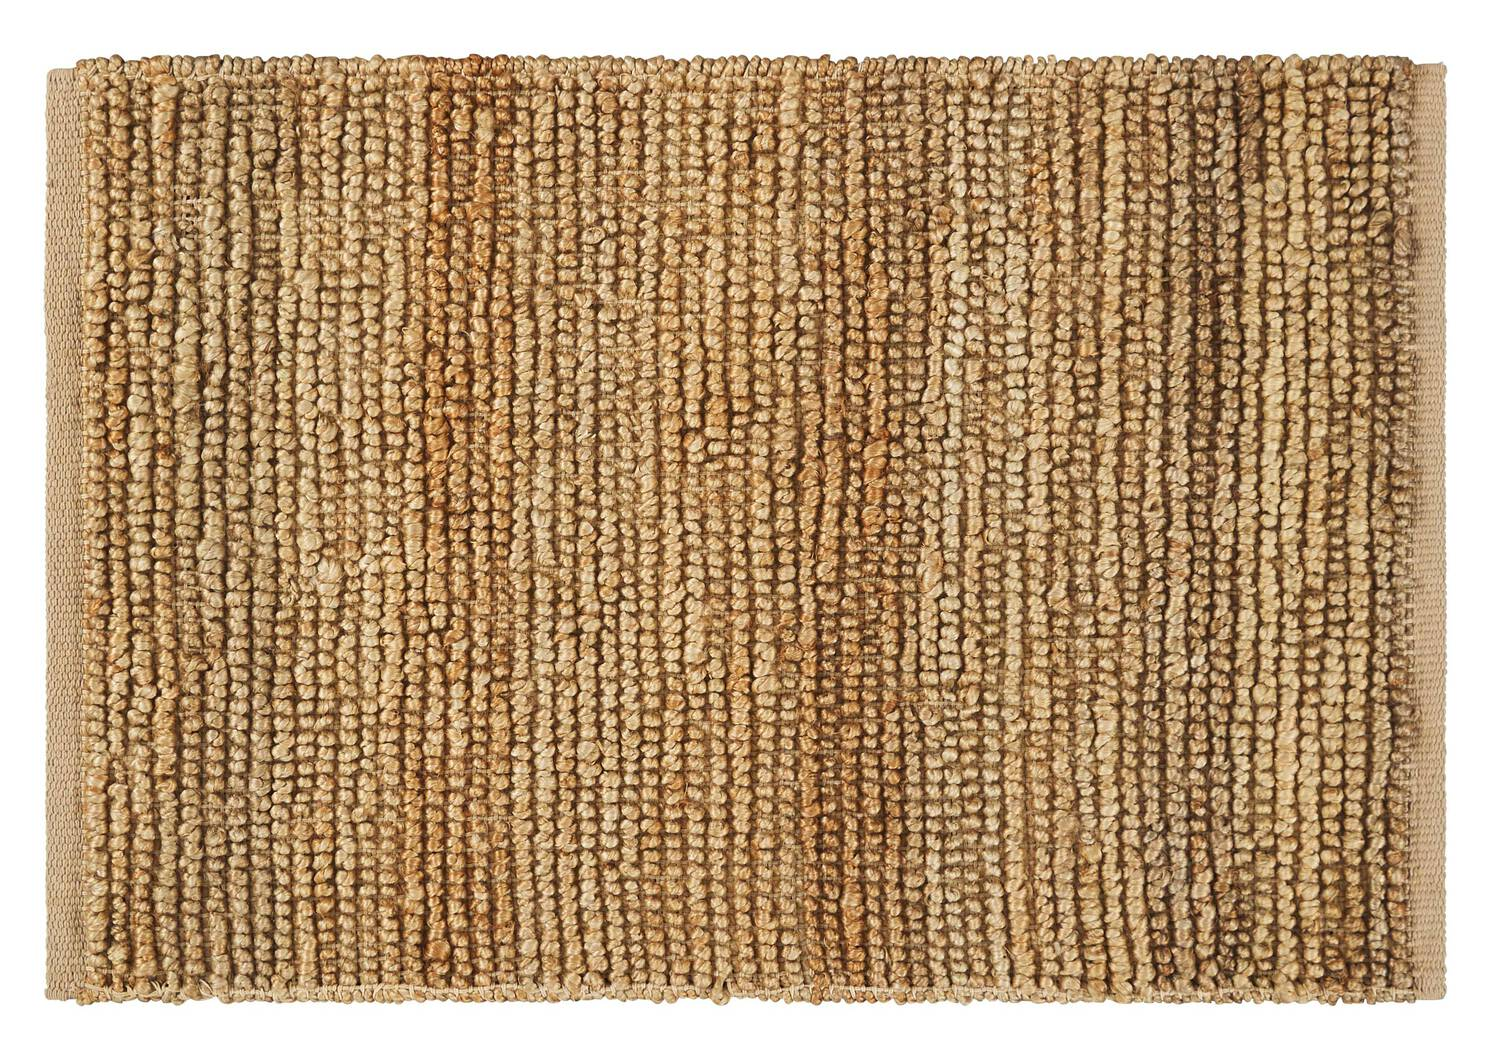 Doherty Accent Rug 24x36 Natural